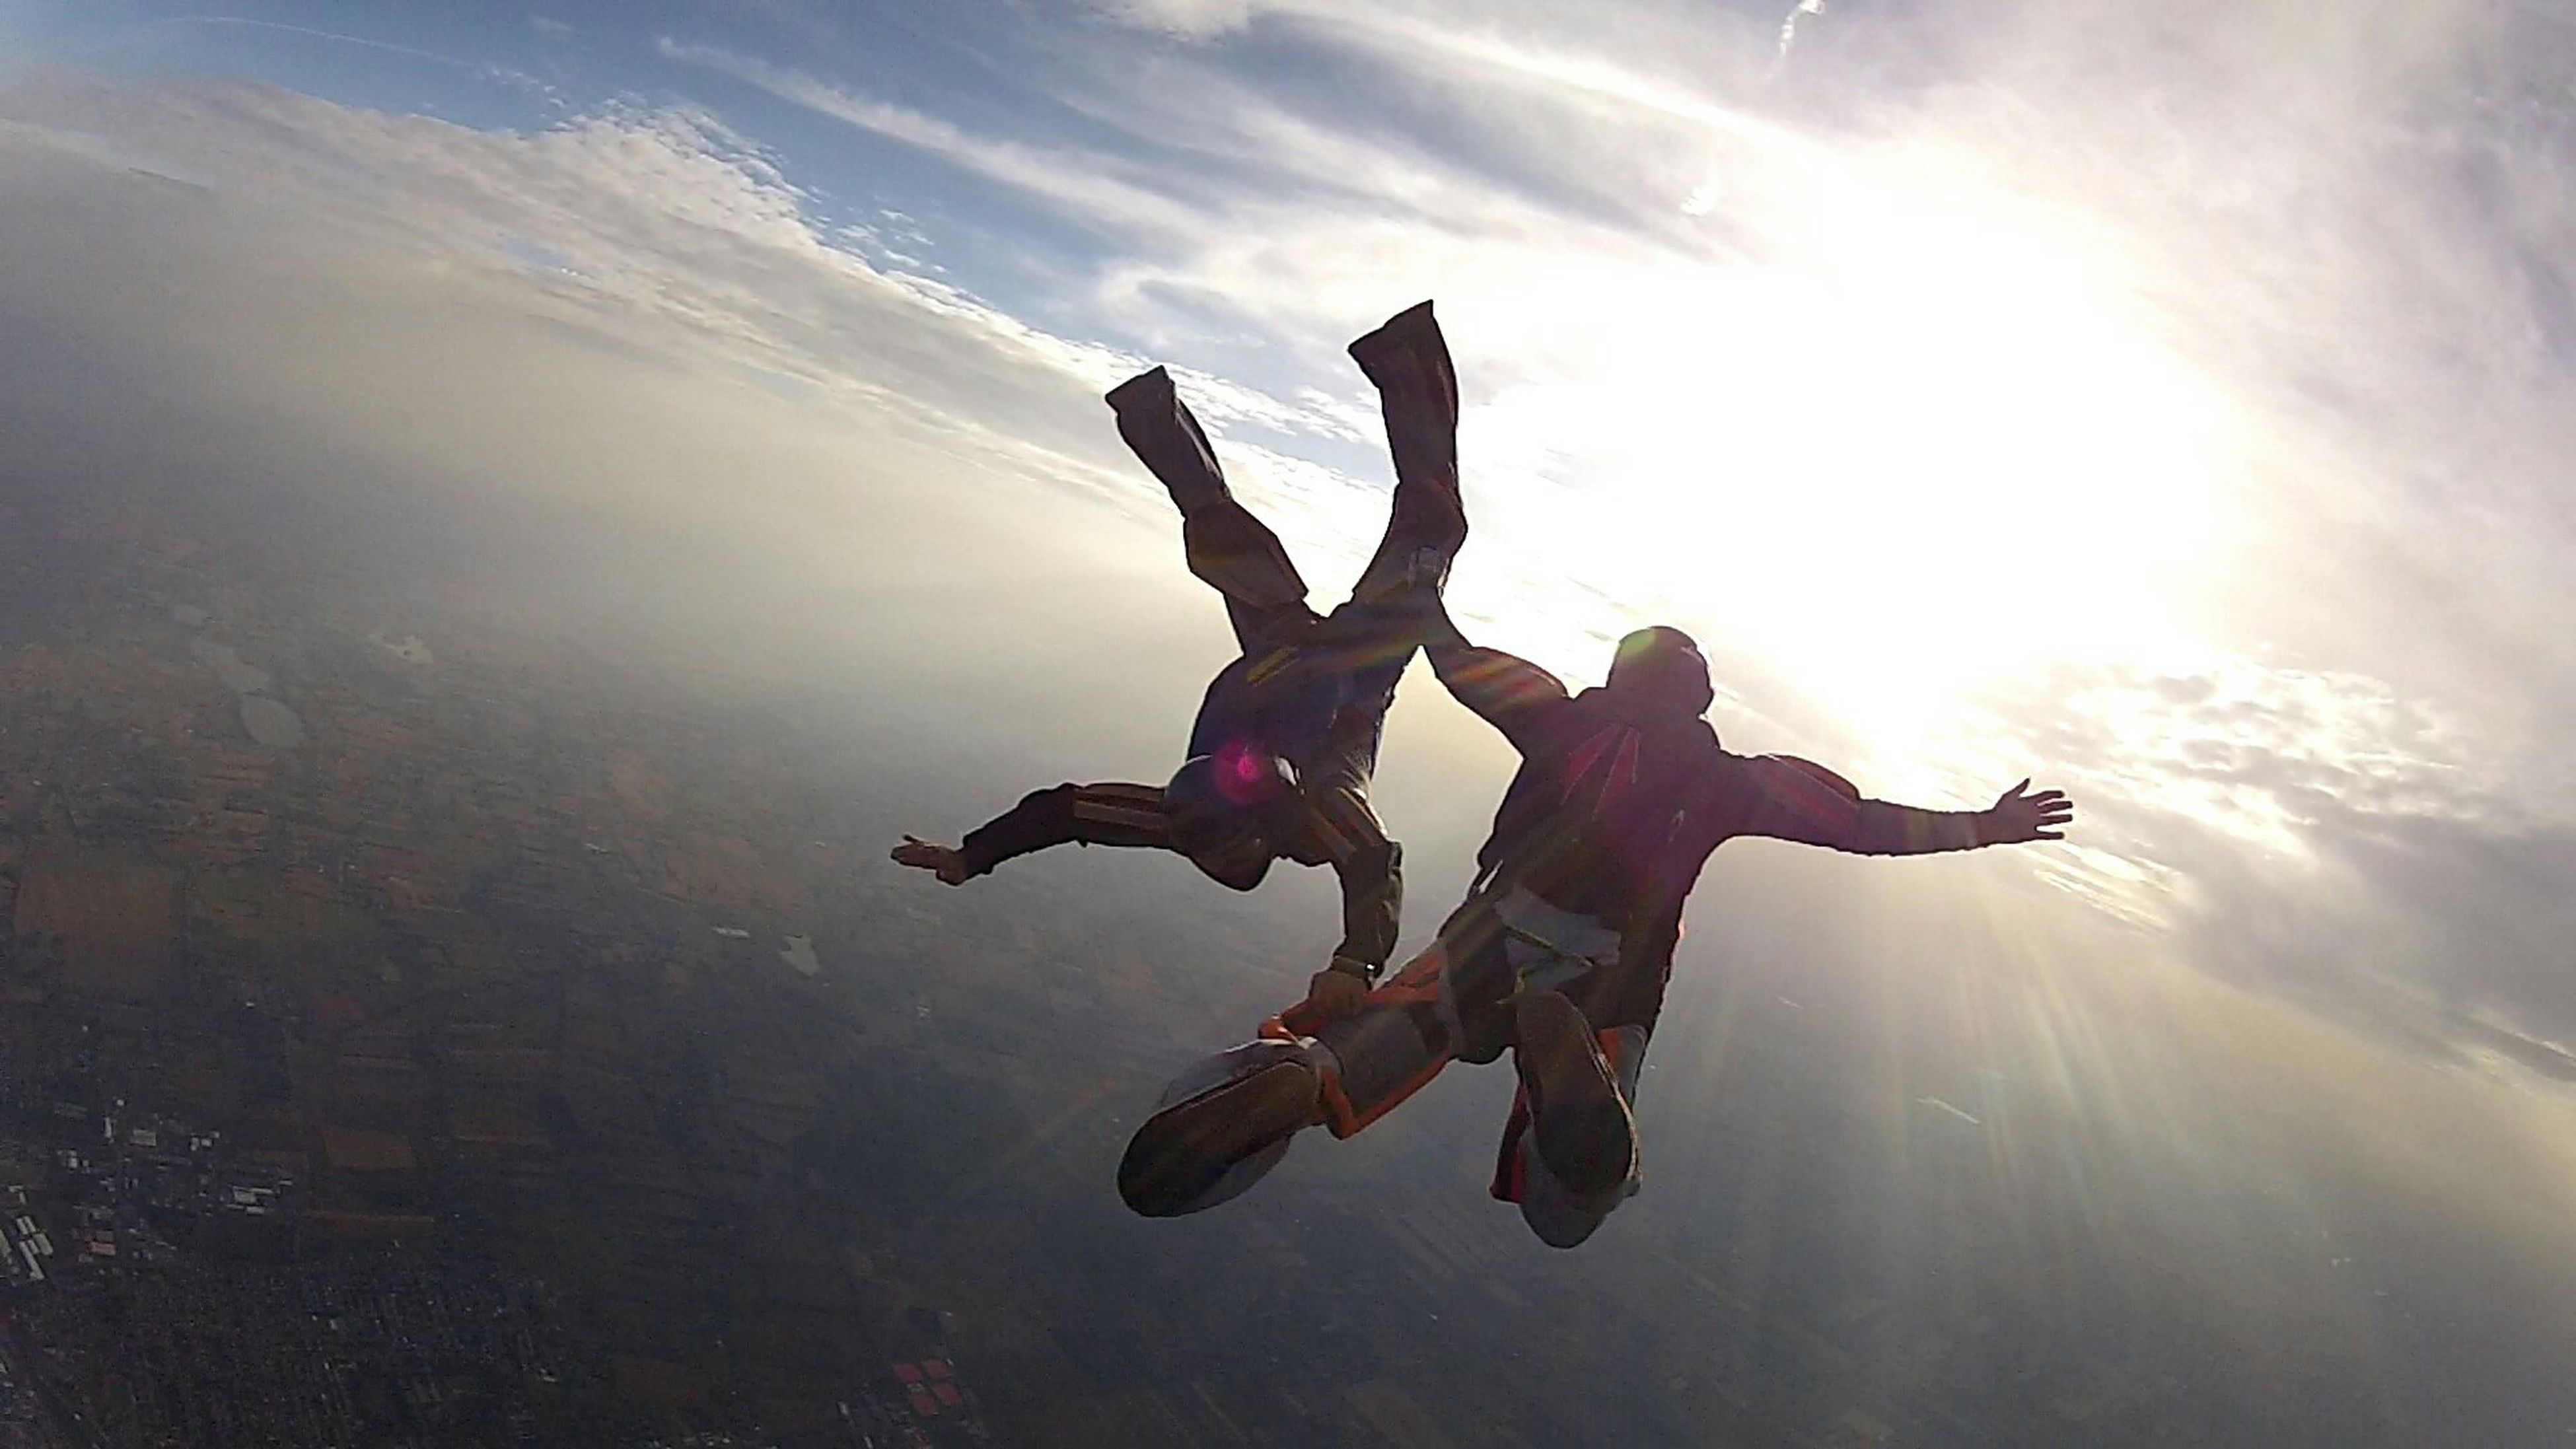 Adrenaline Junkie Sky Diving tht's Me. Afarid of Heights but i closed my eyes and jumped....wht feeling was tht can't tell u....i did it 2 times...and now i am nt afarid...all Credit goes to my Big Brother ..thanks bro for tht...i was feeling like touching the sky with my fingers.it is so peaceful up there.